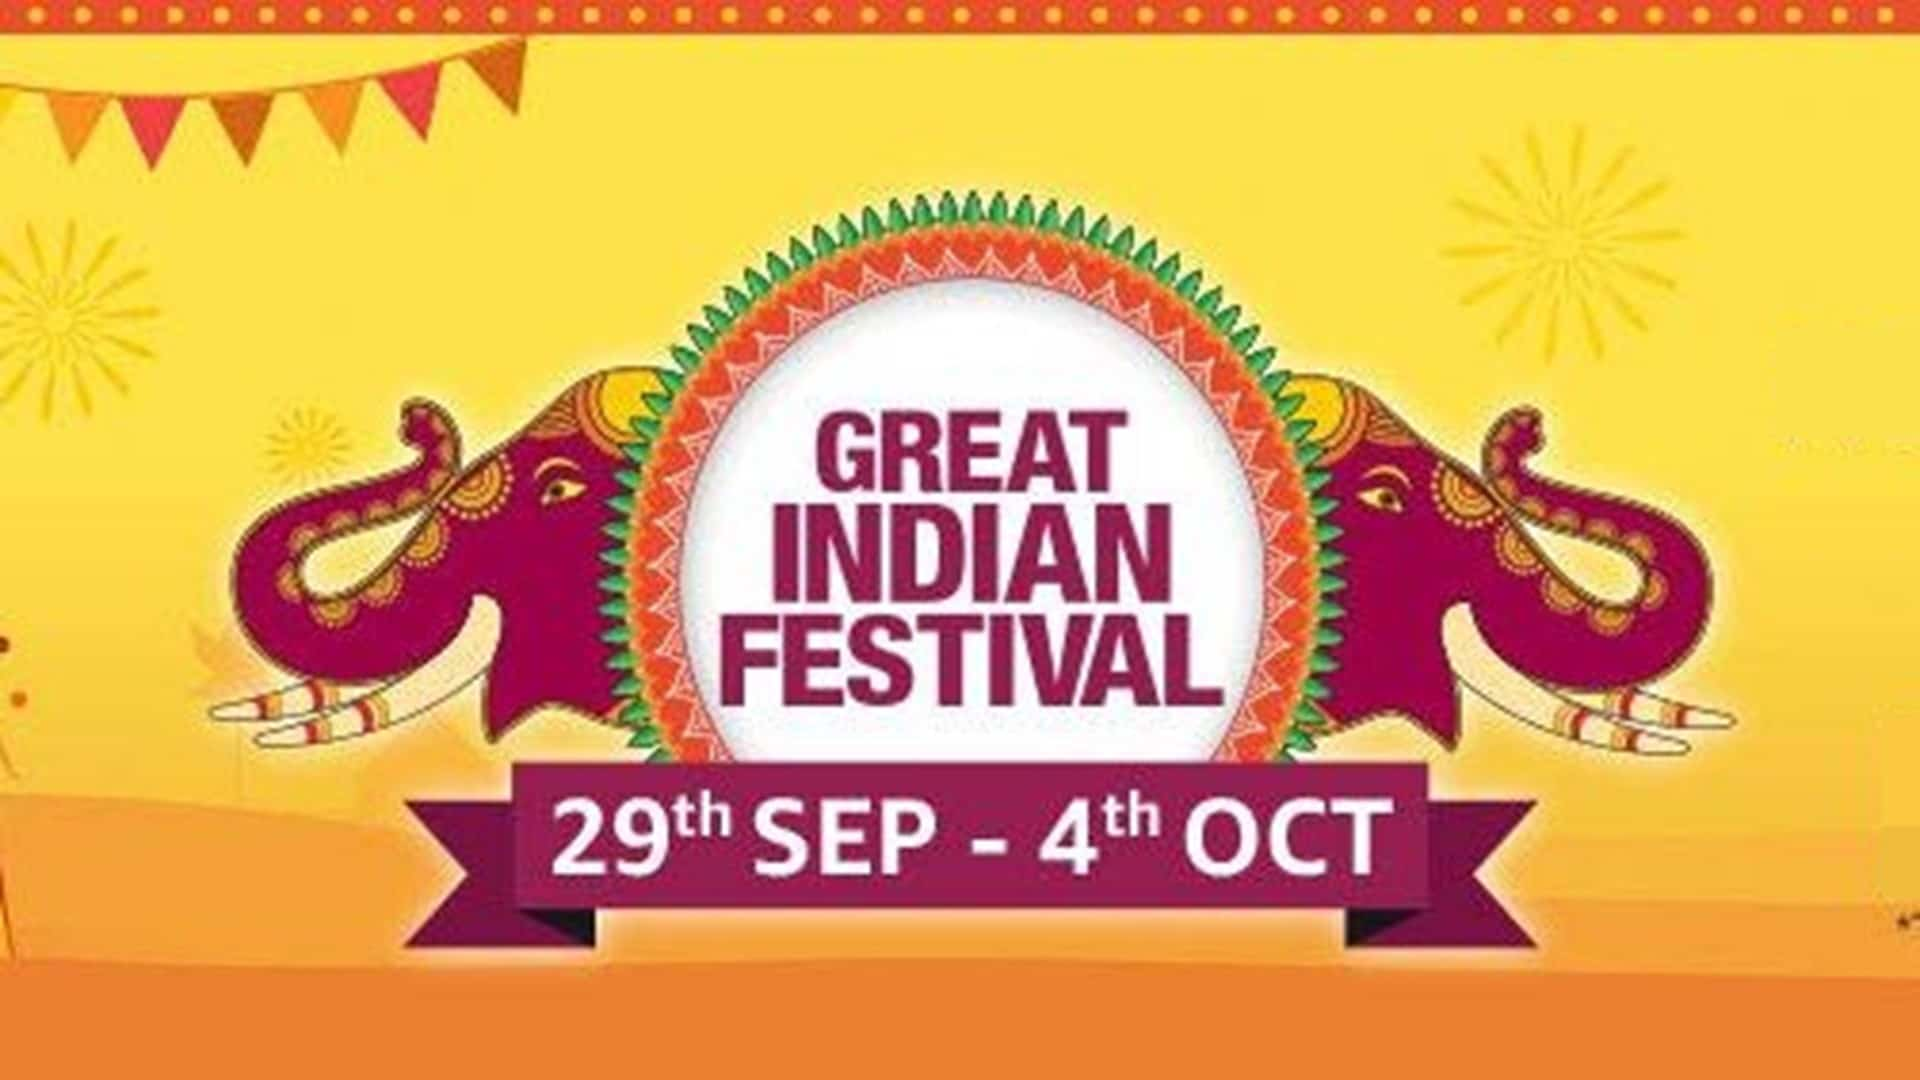 GREAT INDIAN FESTIVAL 28th SEP – 4th OCT – AMAZON.IN